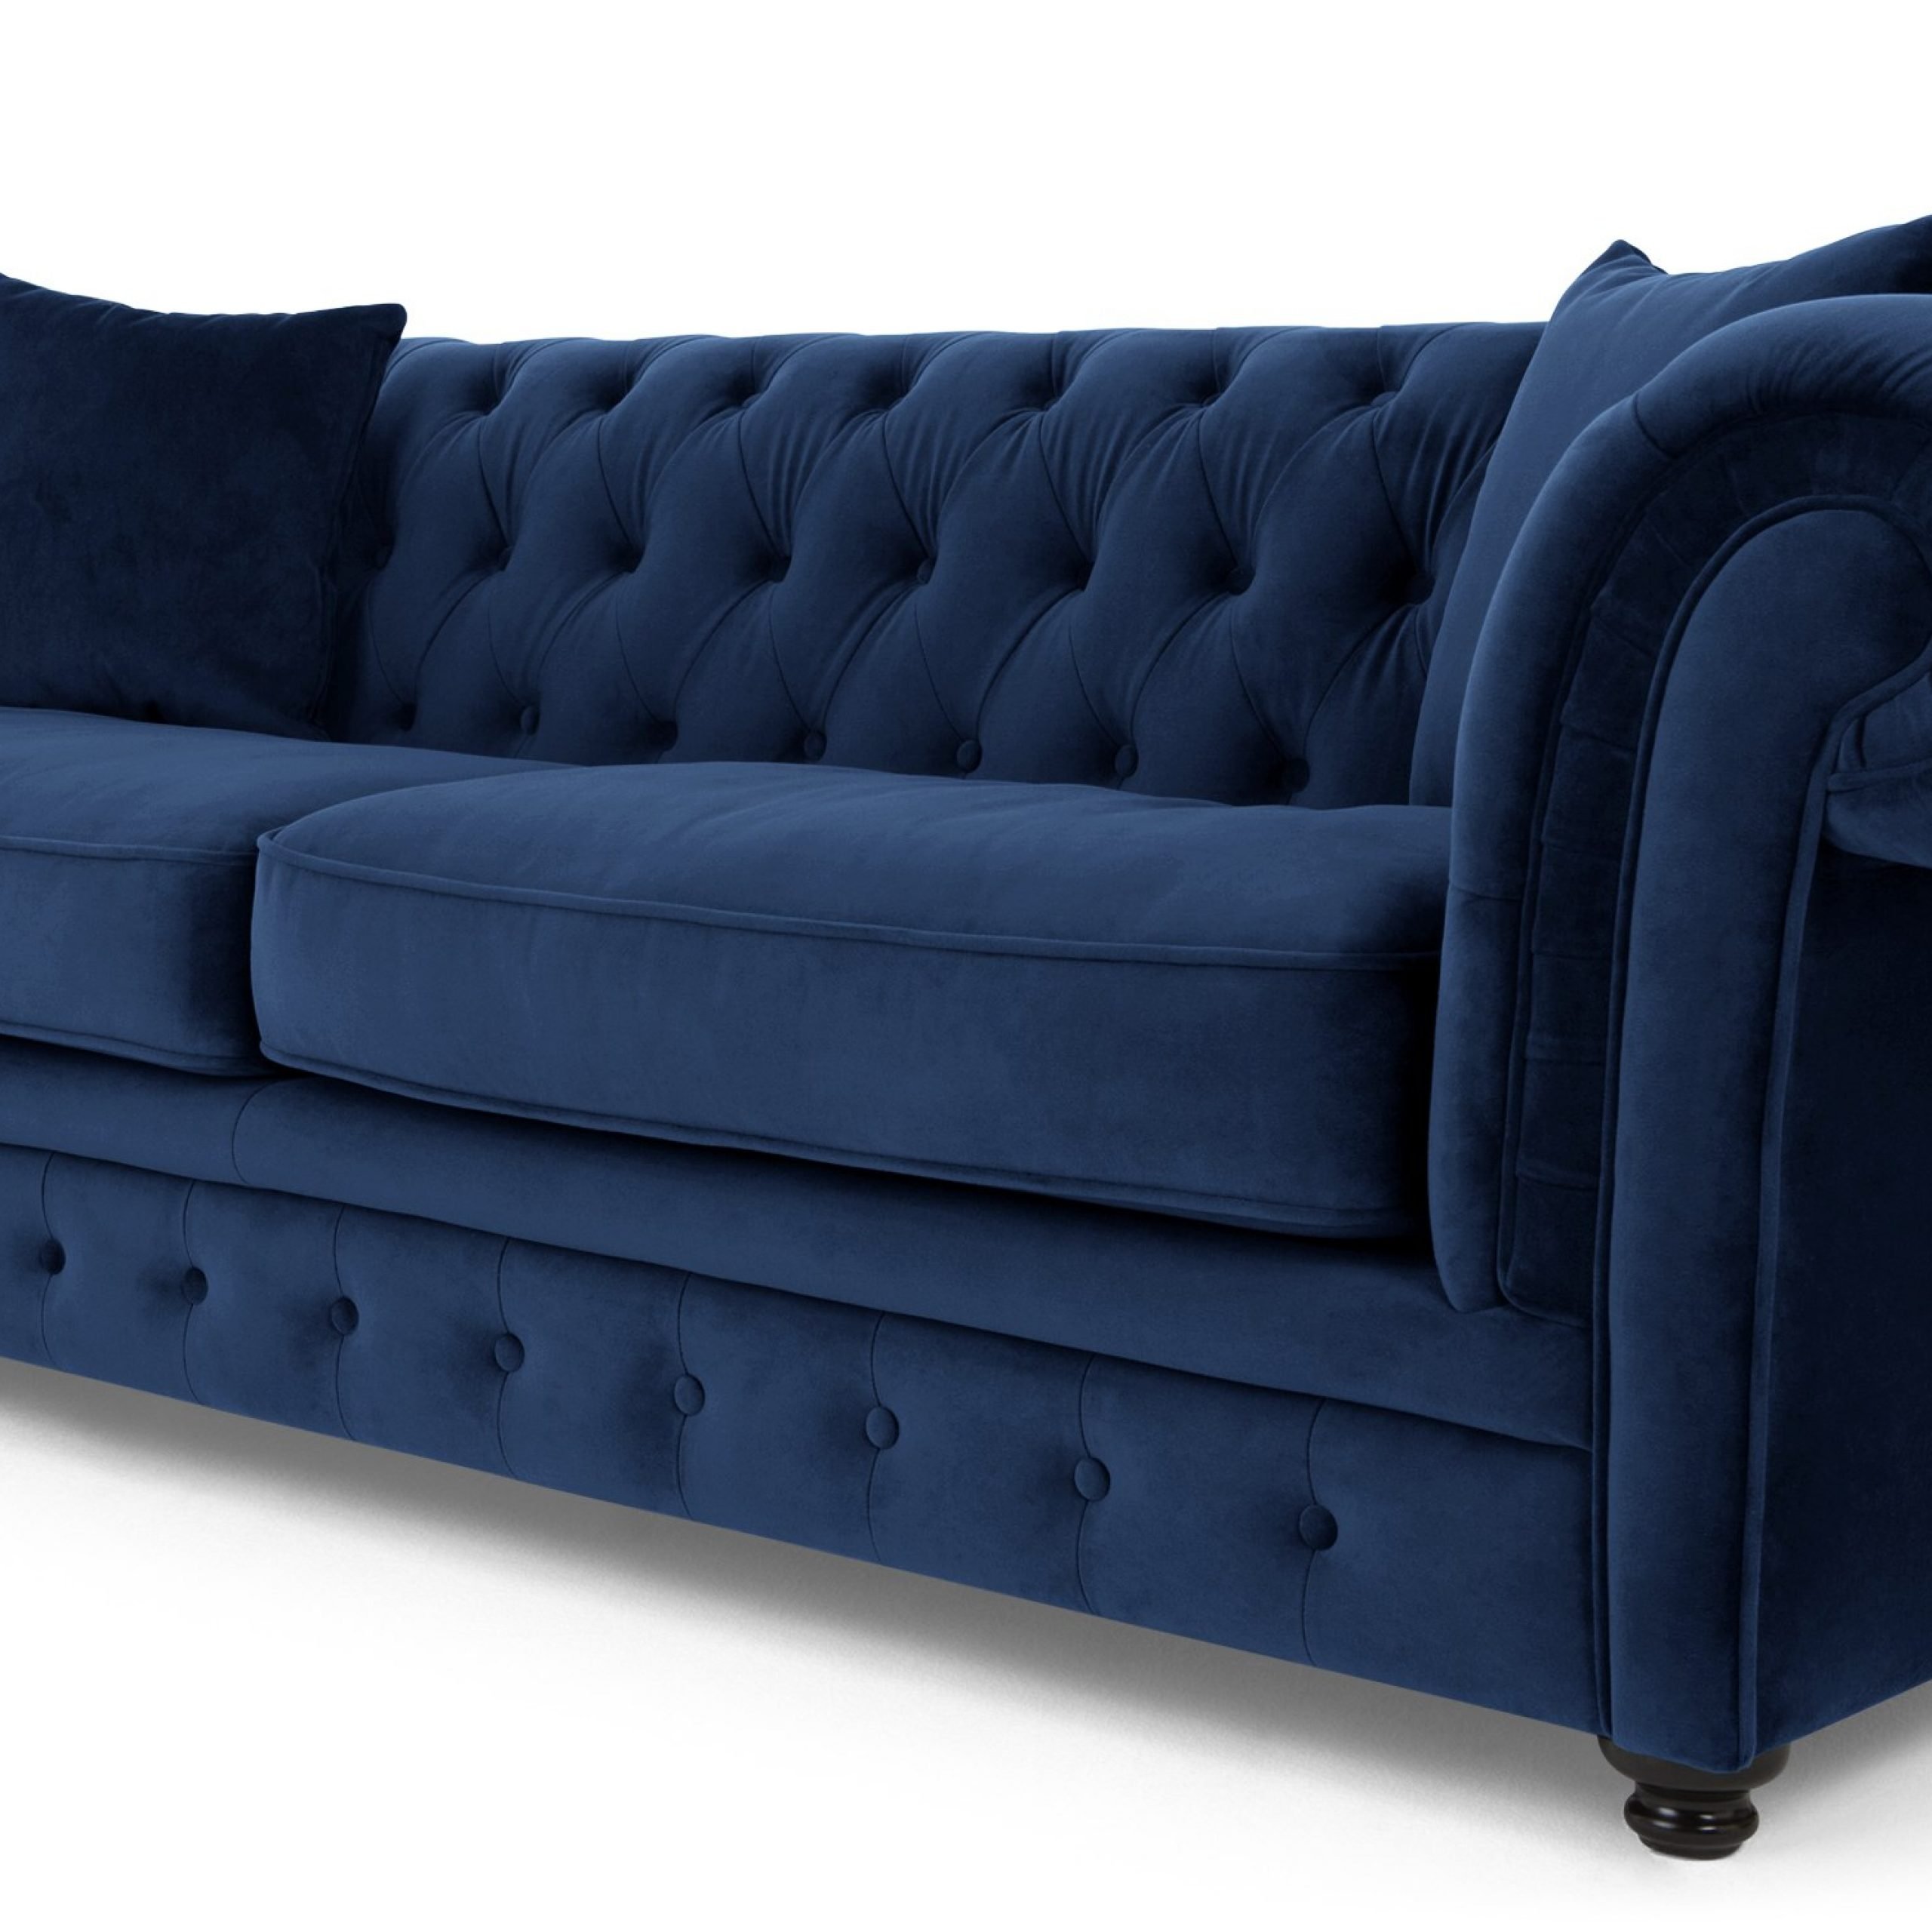 Branagh 3 Seater Chesterfield Sofa, Electric Blue Velvet Intended For Blue Sofa Chairs (View 1 of 15)